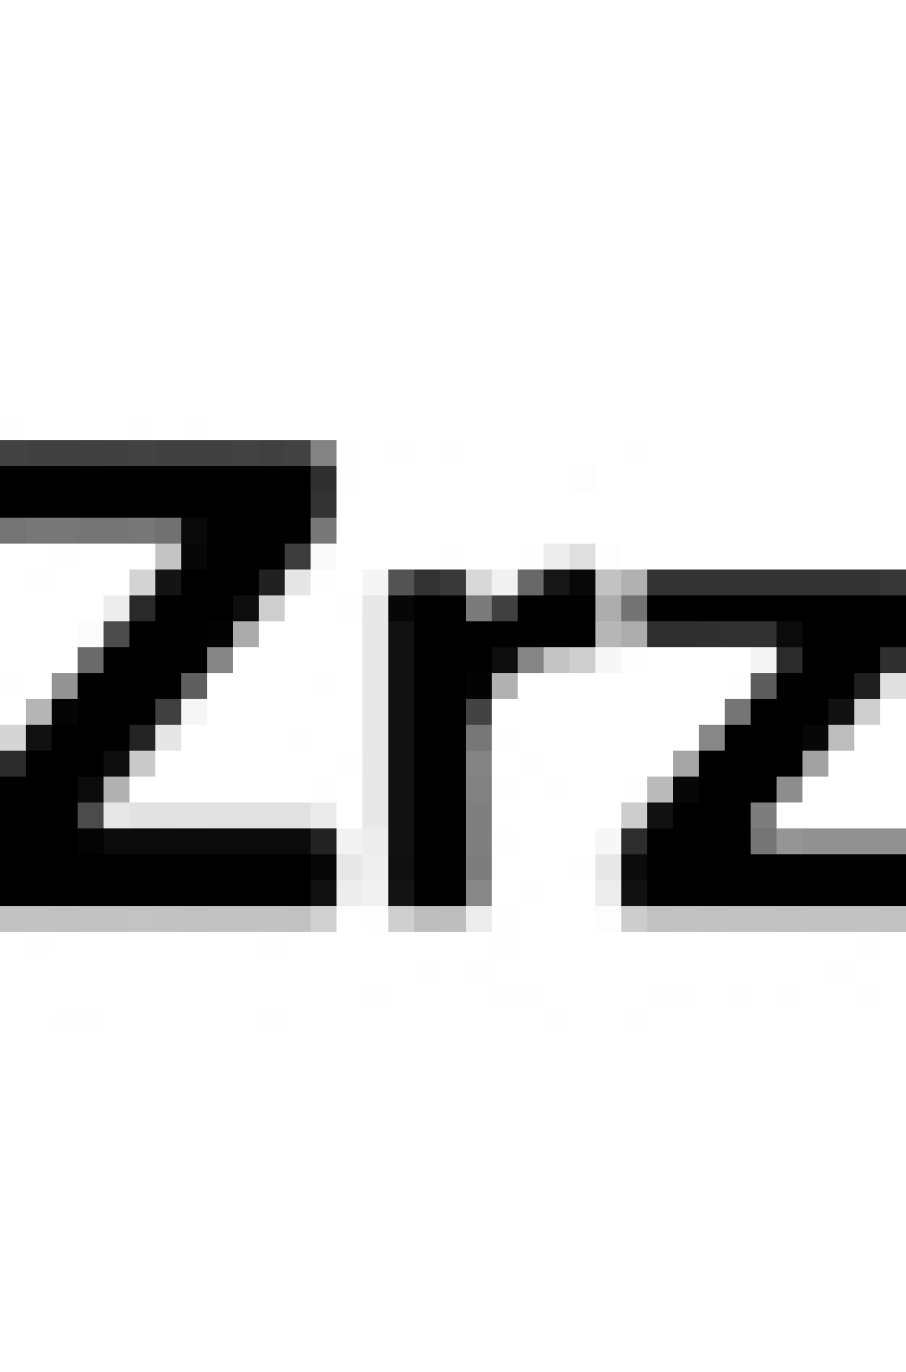 Apartments-White-Bathroom-Wall-Tile-White-Sink-With-Weighter-And-